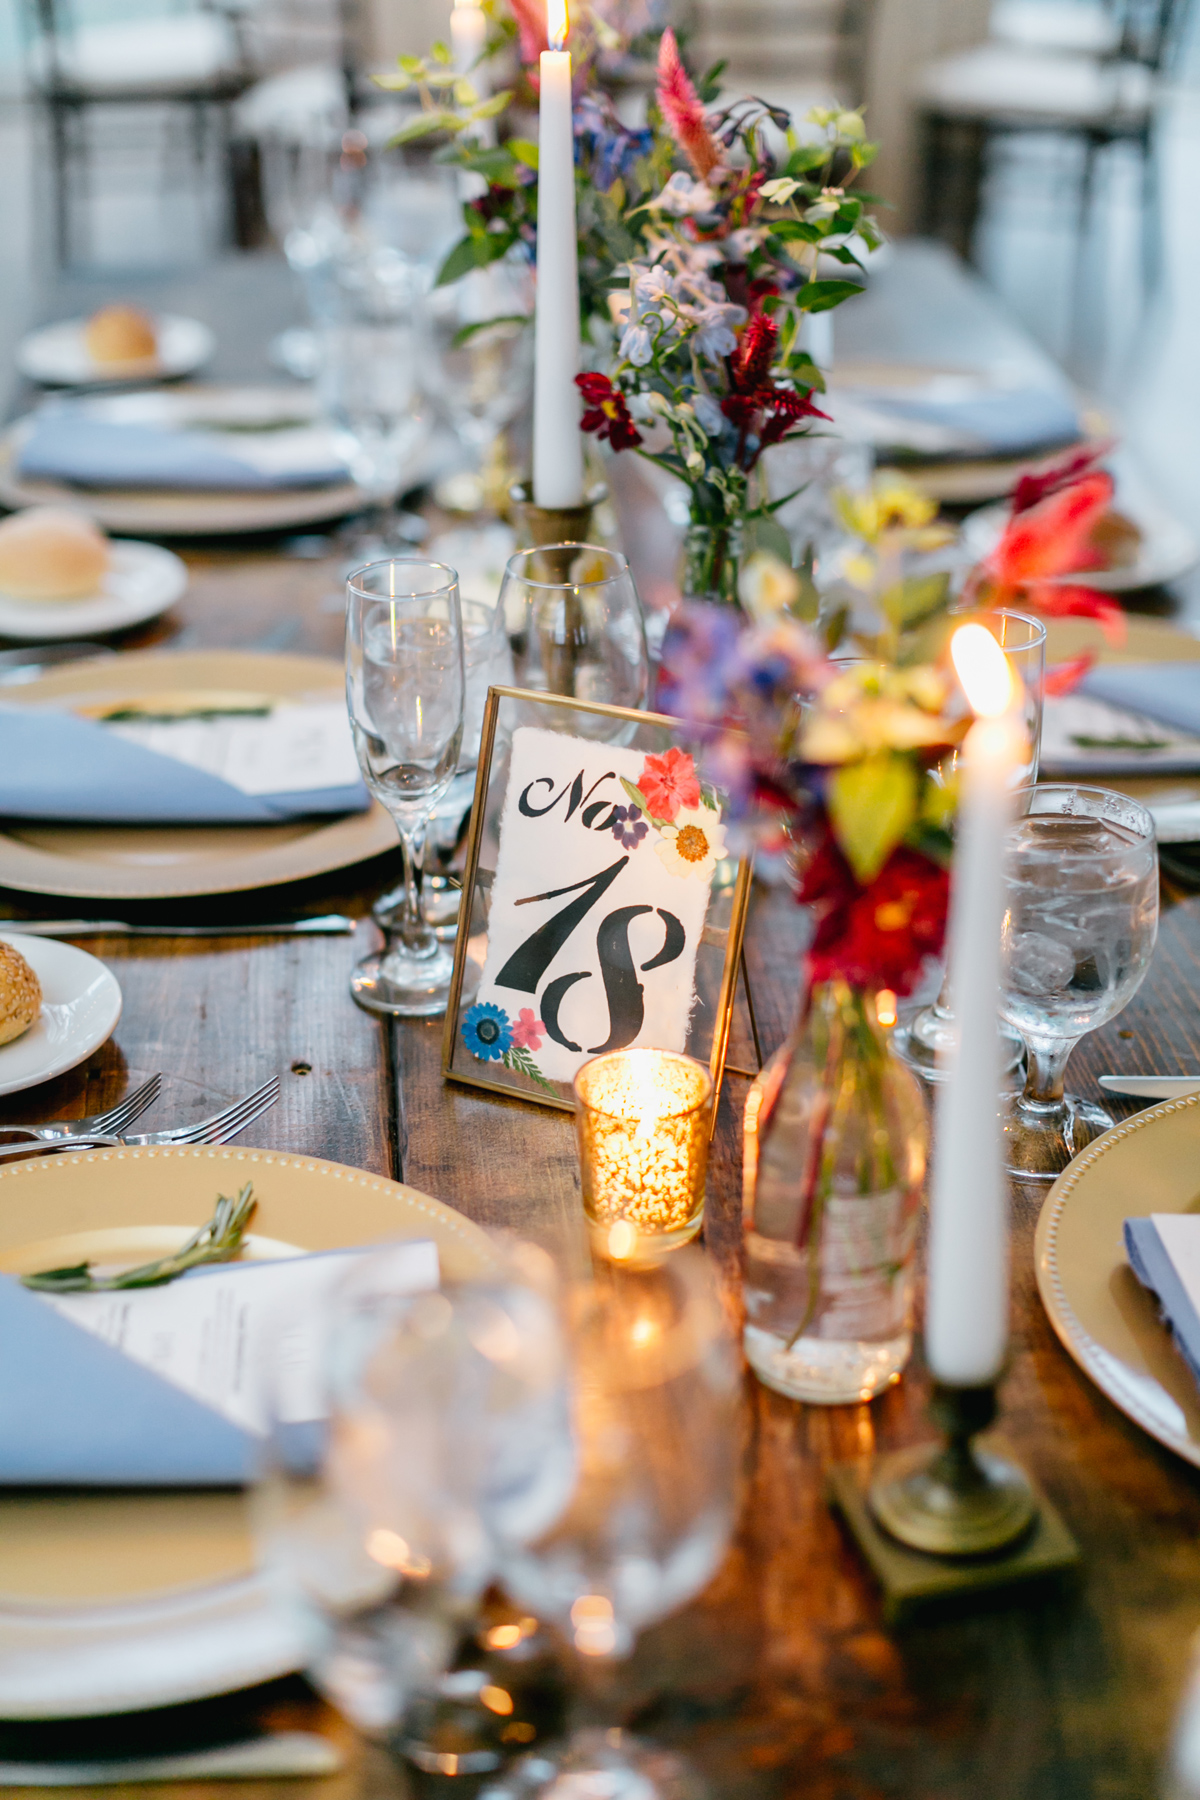 wedding-decor-Glen-Foerd-on-the-Delware